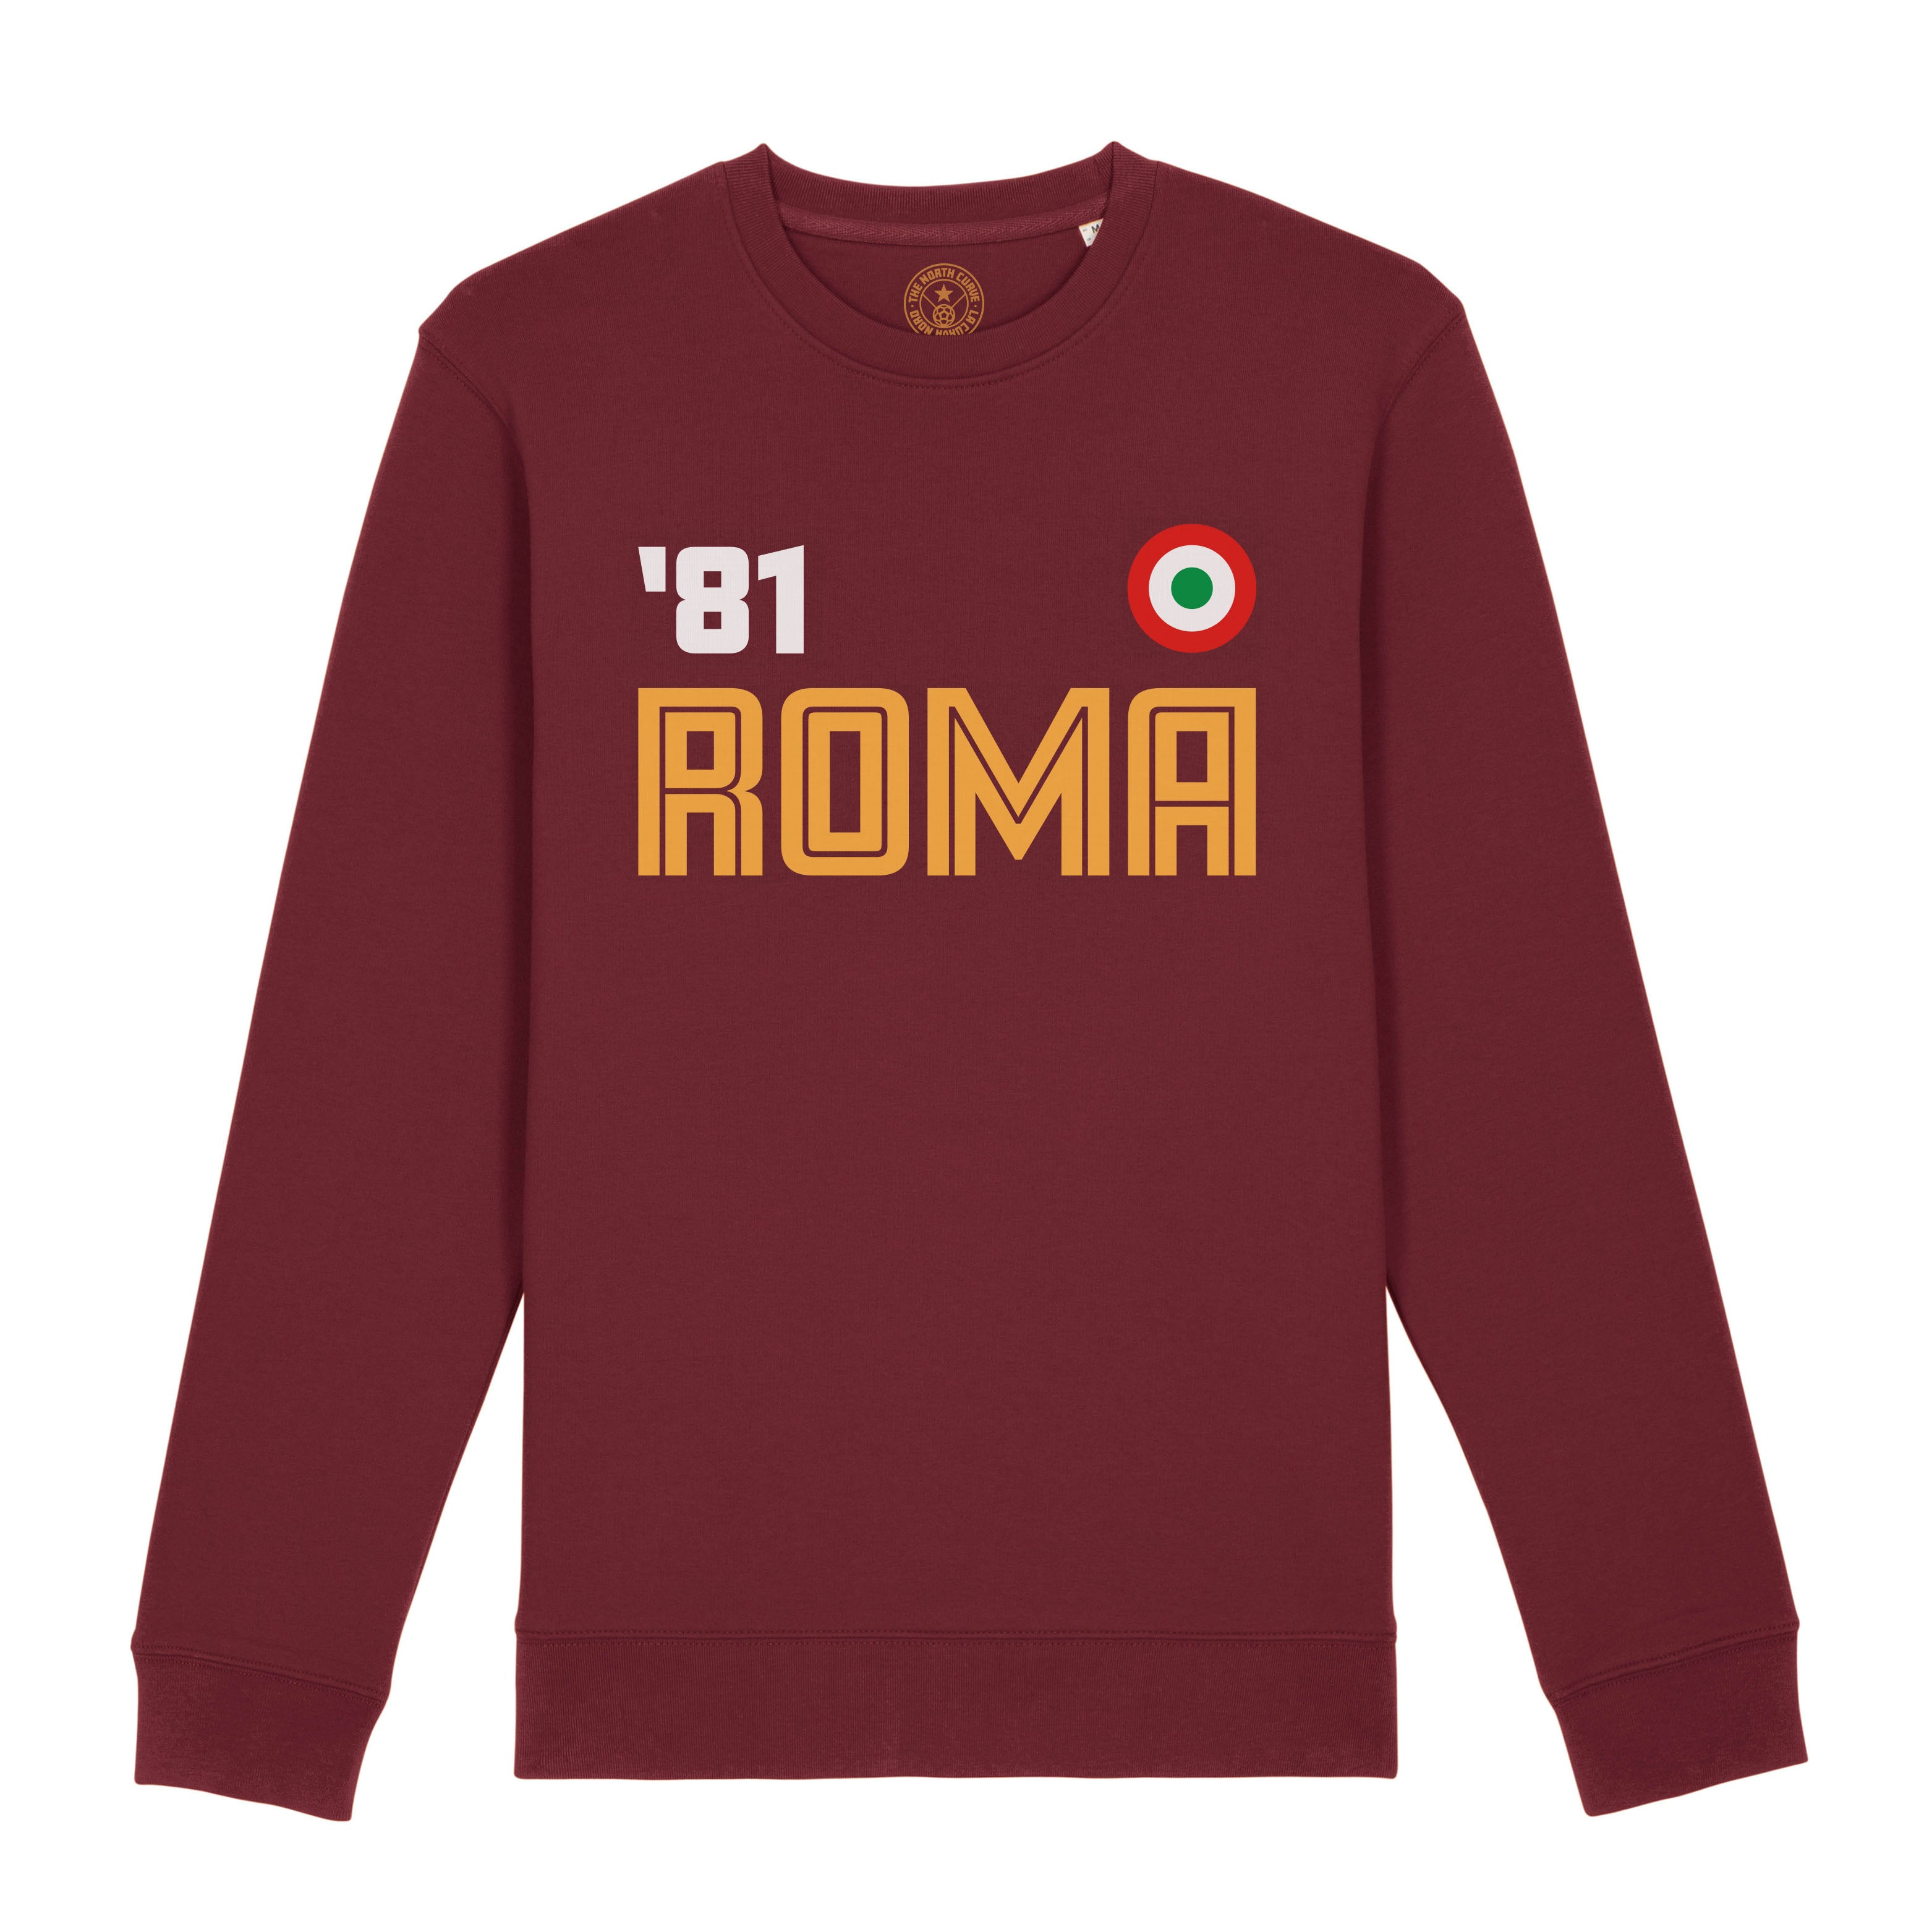 Roma 1981 sweatshirt - The North Curve - Retro football sweatshirt